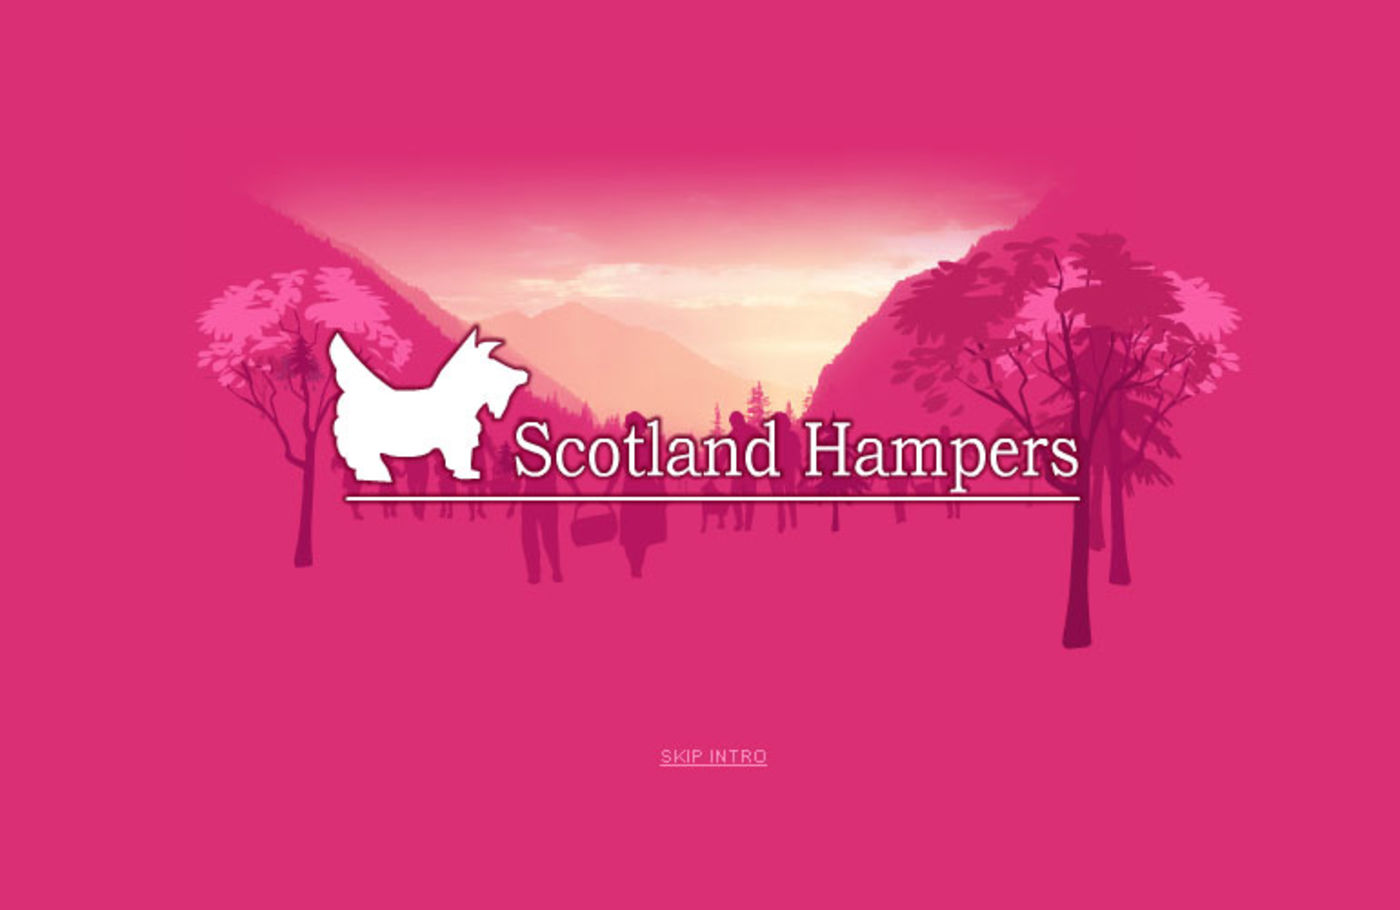 Scotland Hampers Welcome